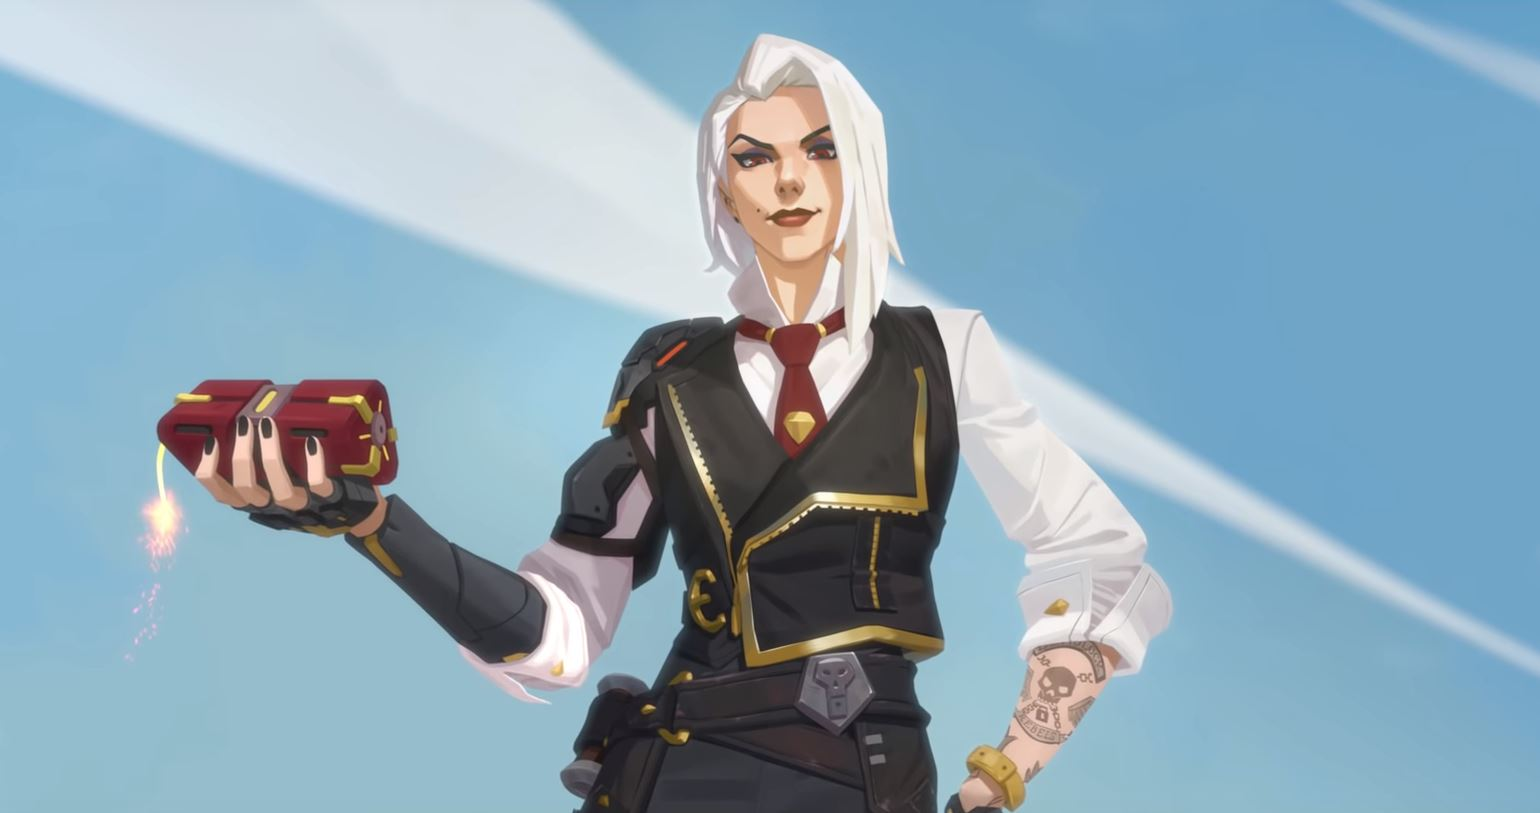 To celebrate Ashe's launch in Overwatch, here's a ranking of each Ashe/Ash  in competitive gaming